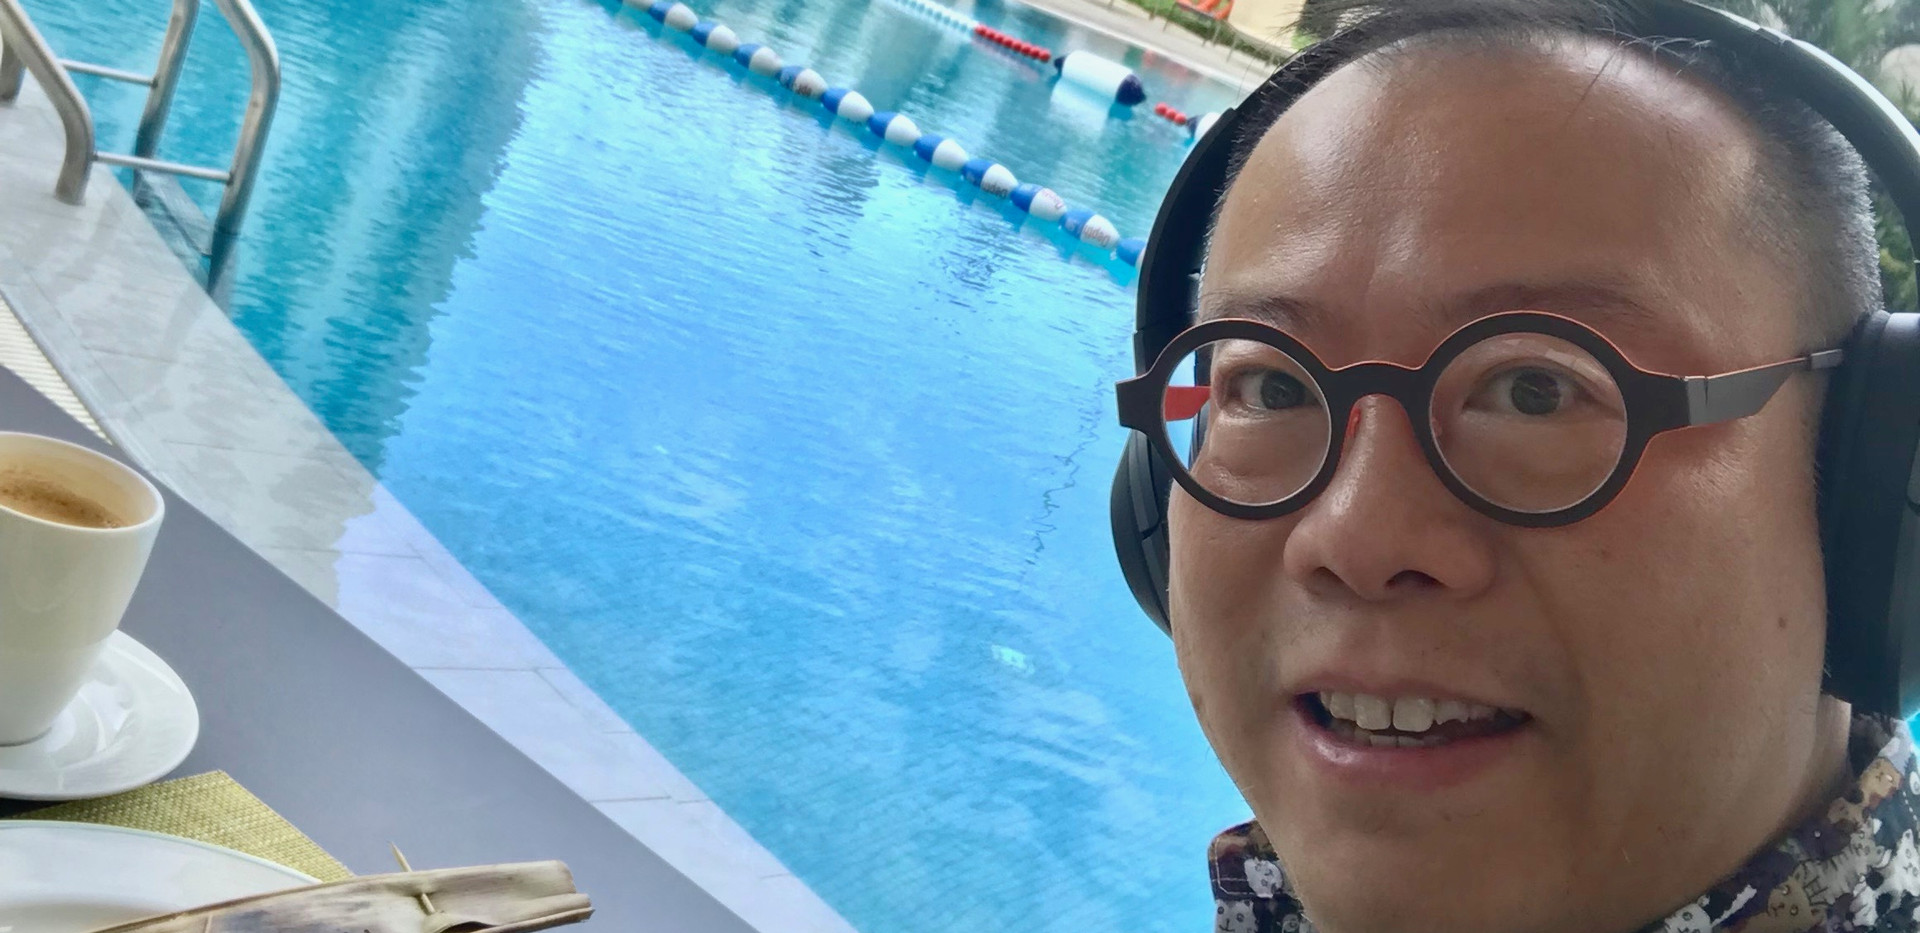 Breakfast by the pool in Singapore Aug 2018